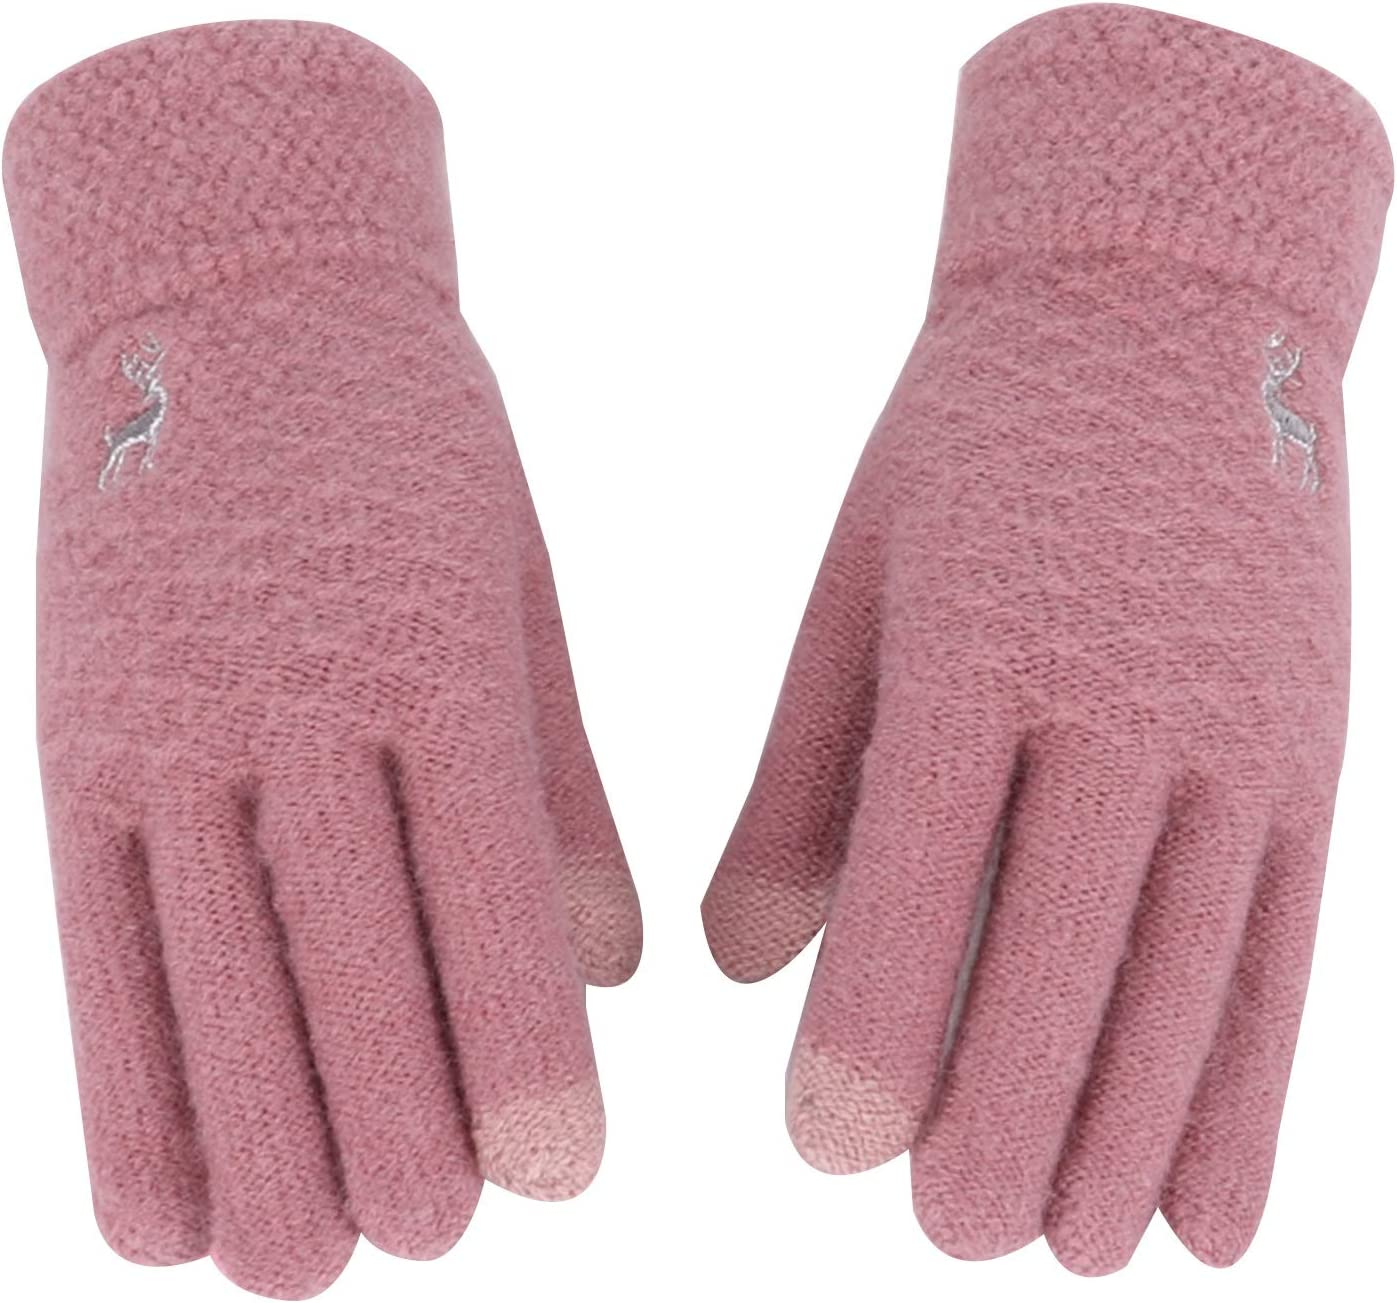 FOLDING Gloves Women's Winter Touch Screen Gloves Warm Touch Screen Finger Texting Elastic Cuff Warm Gloves (Color : Pink)